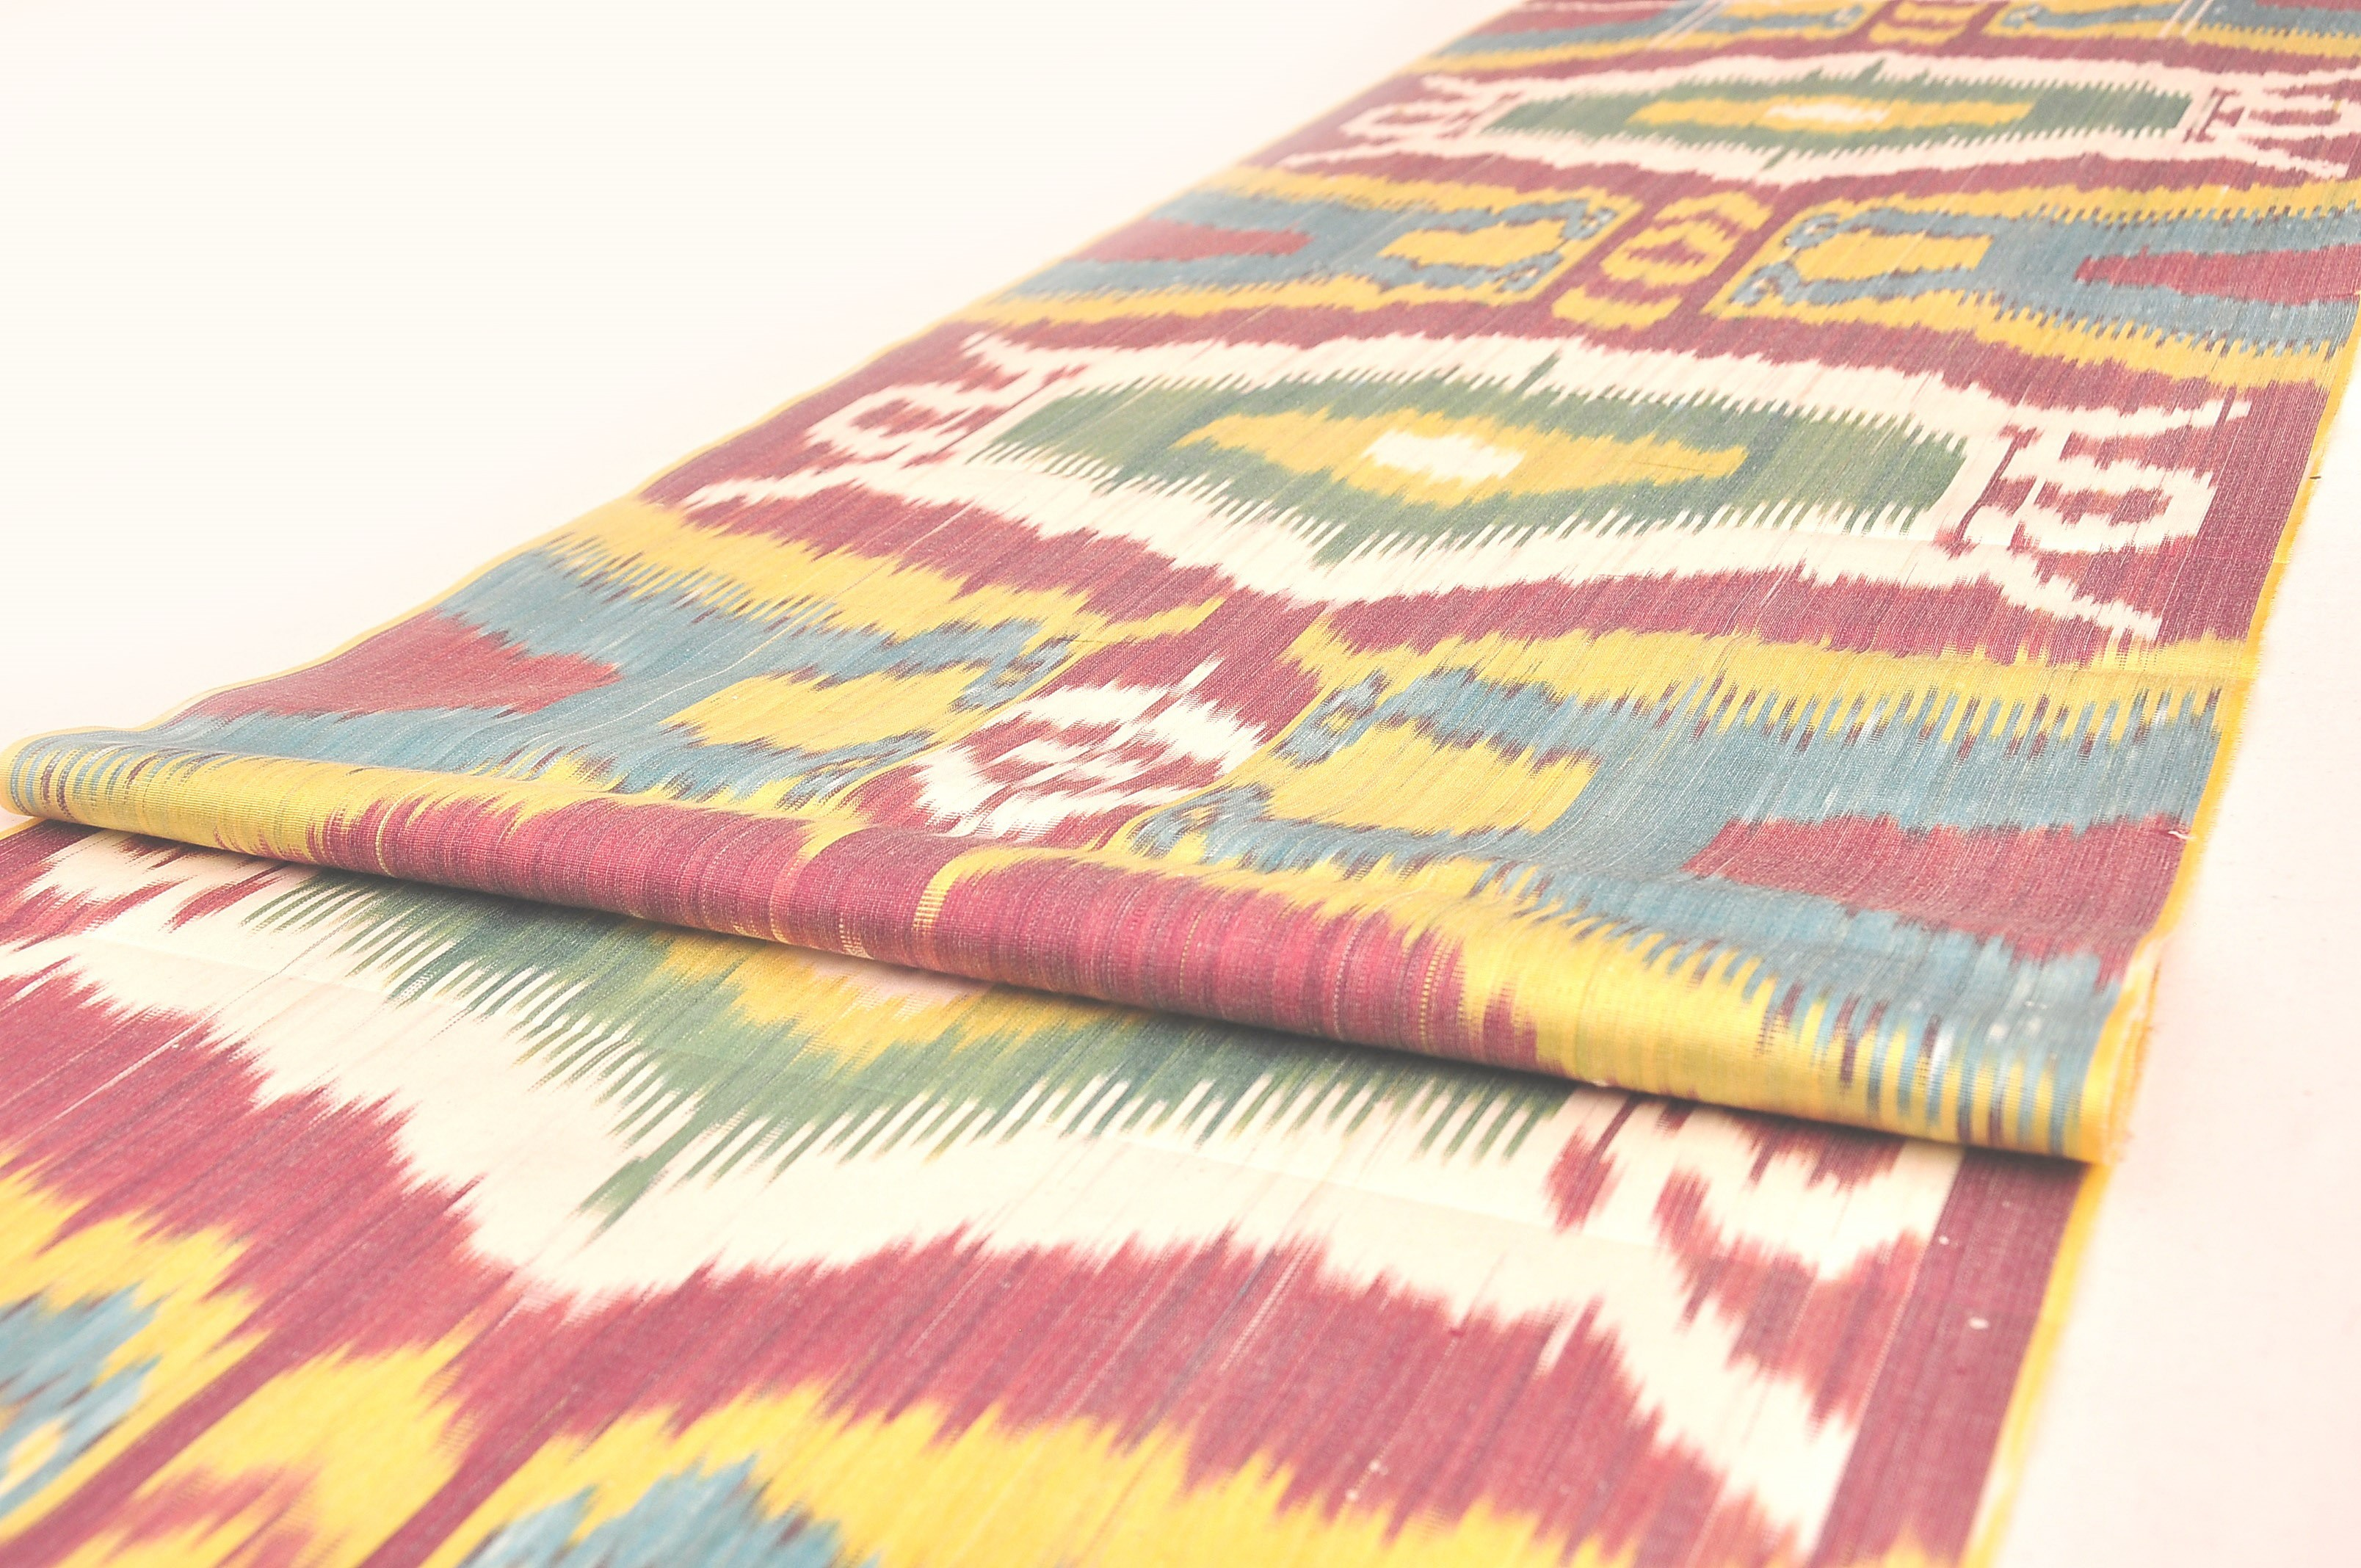 Uzbek ikat fabric by the yards upholstery fabric fabric table runner cotton ikat